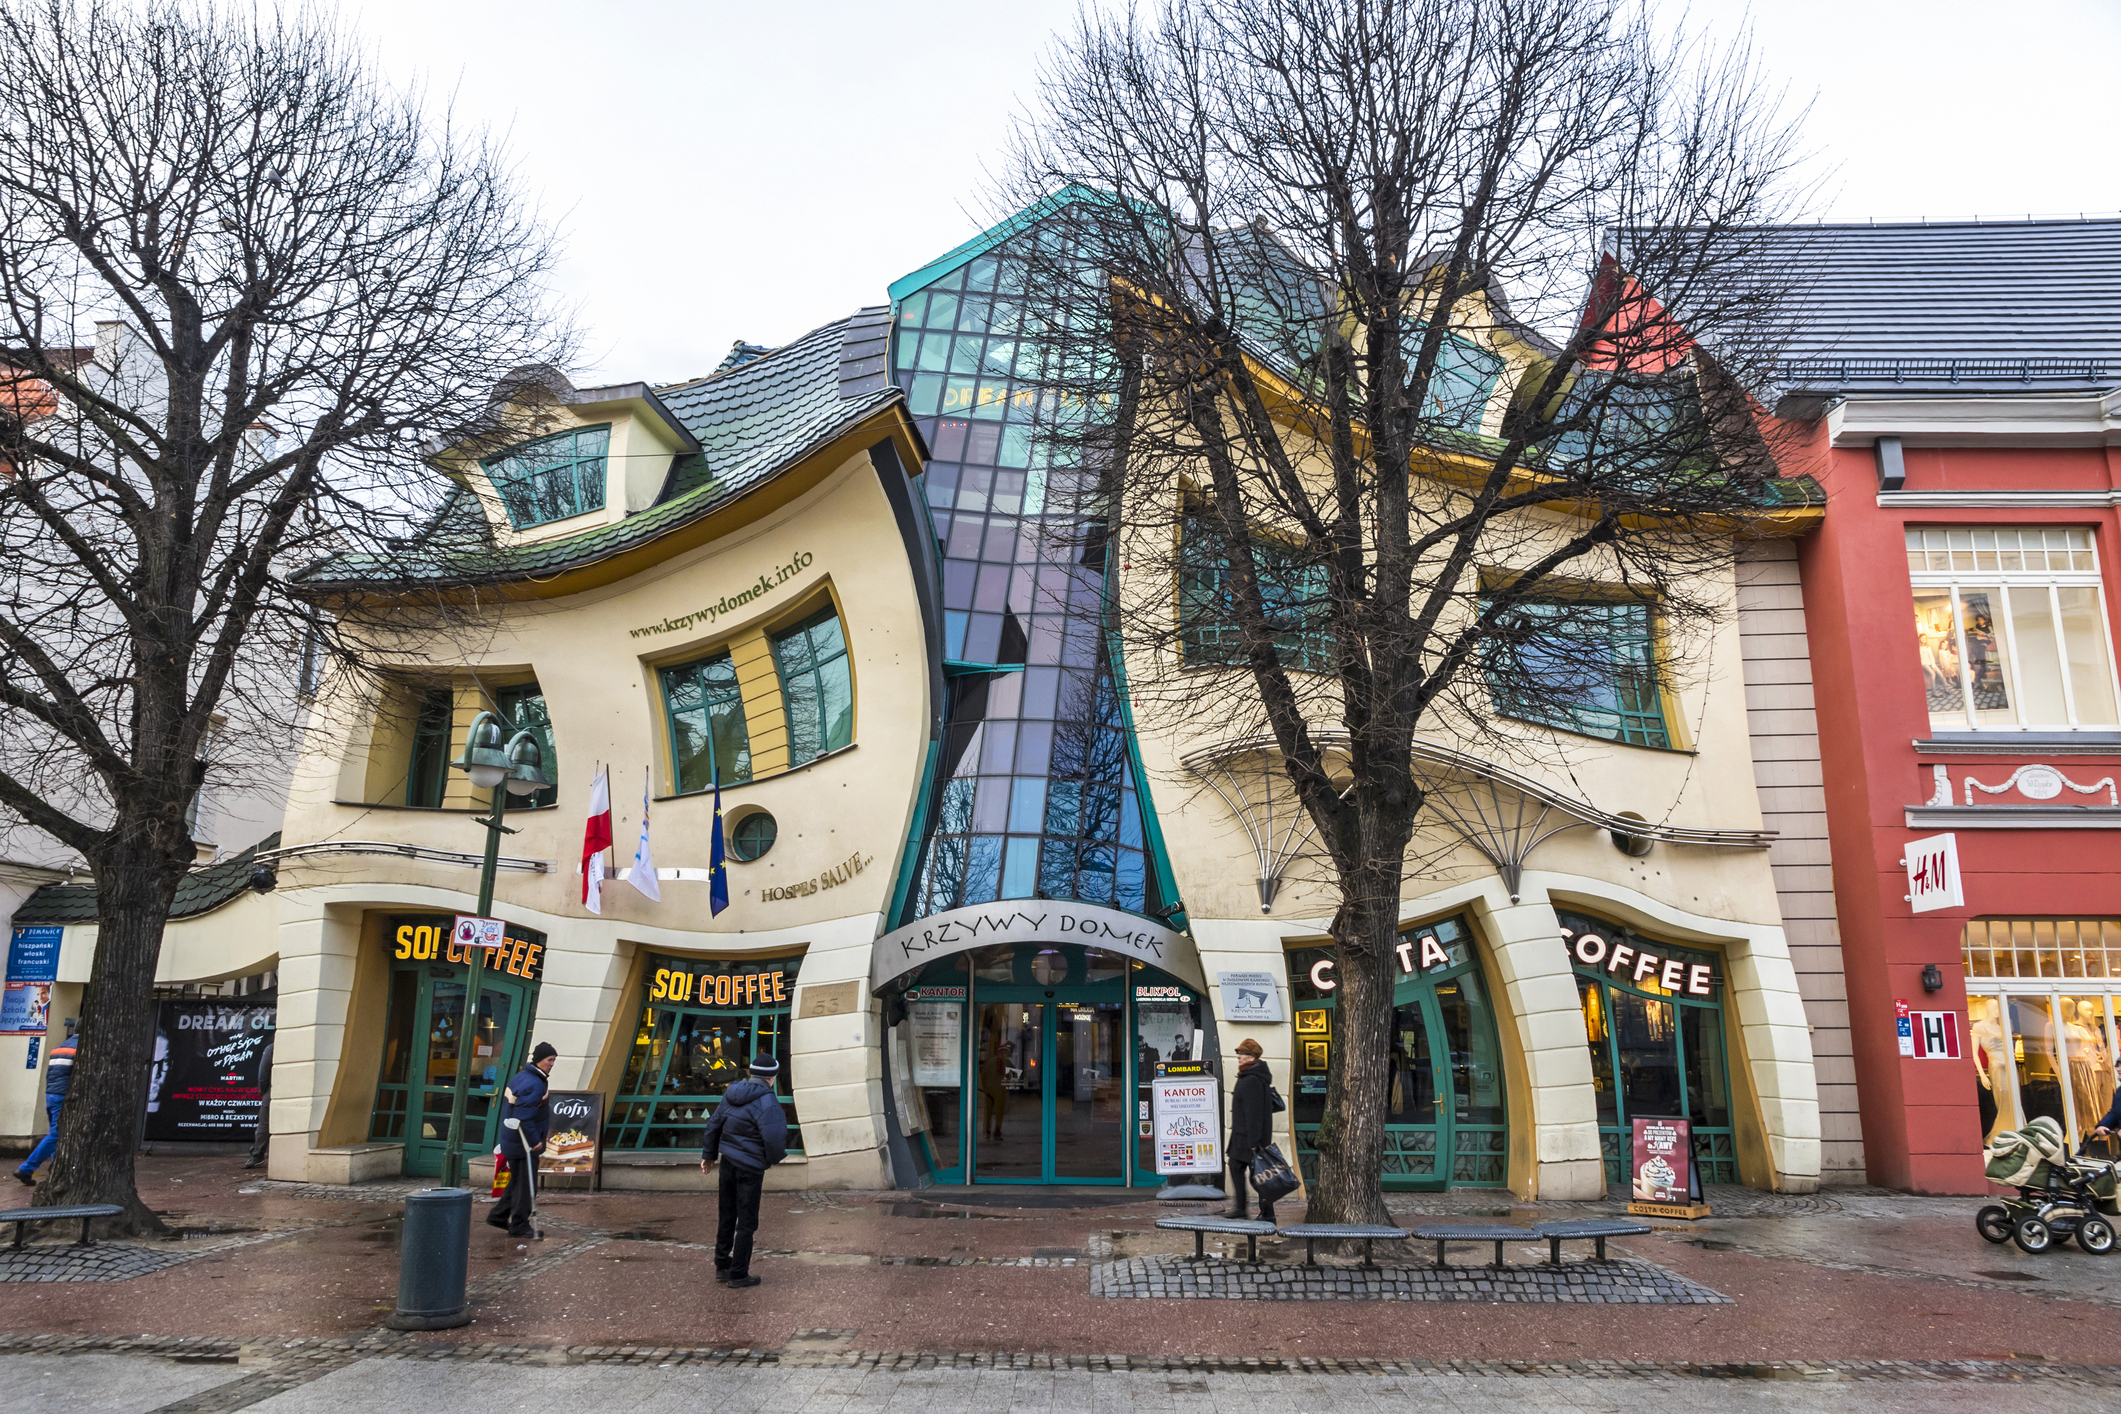 Crooked little house (Krzywy Domek) in Sopot, Poland